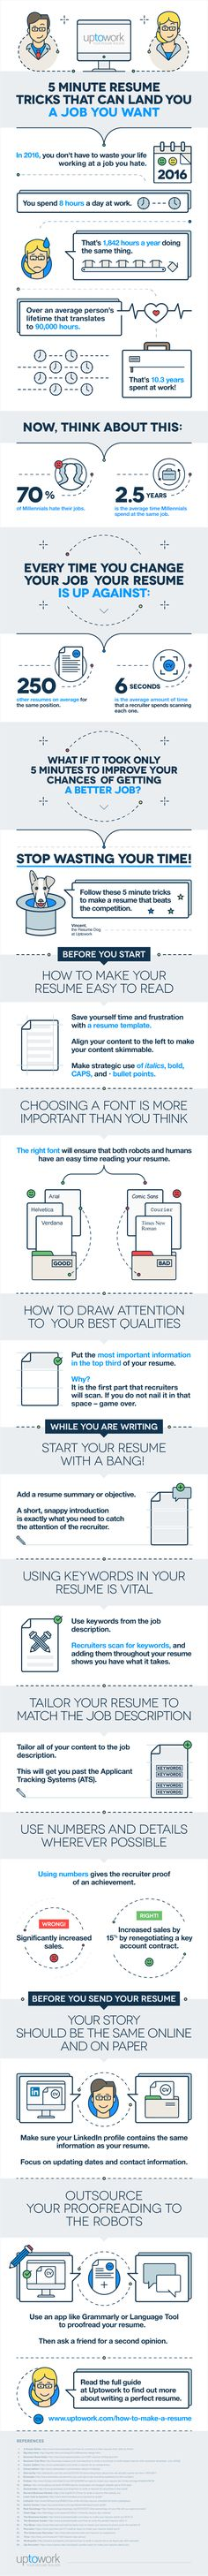 55 best Infographic Resume Ideas images on Pinterest Infographic